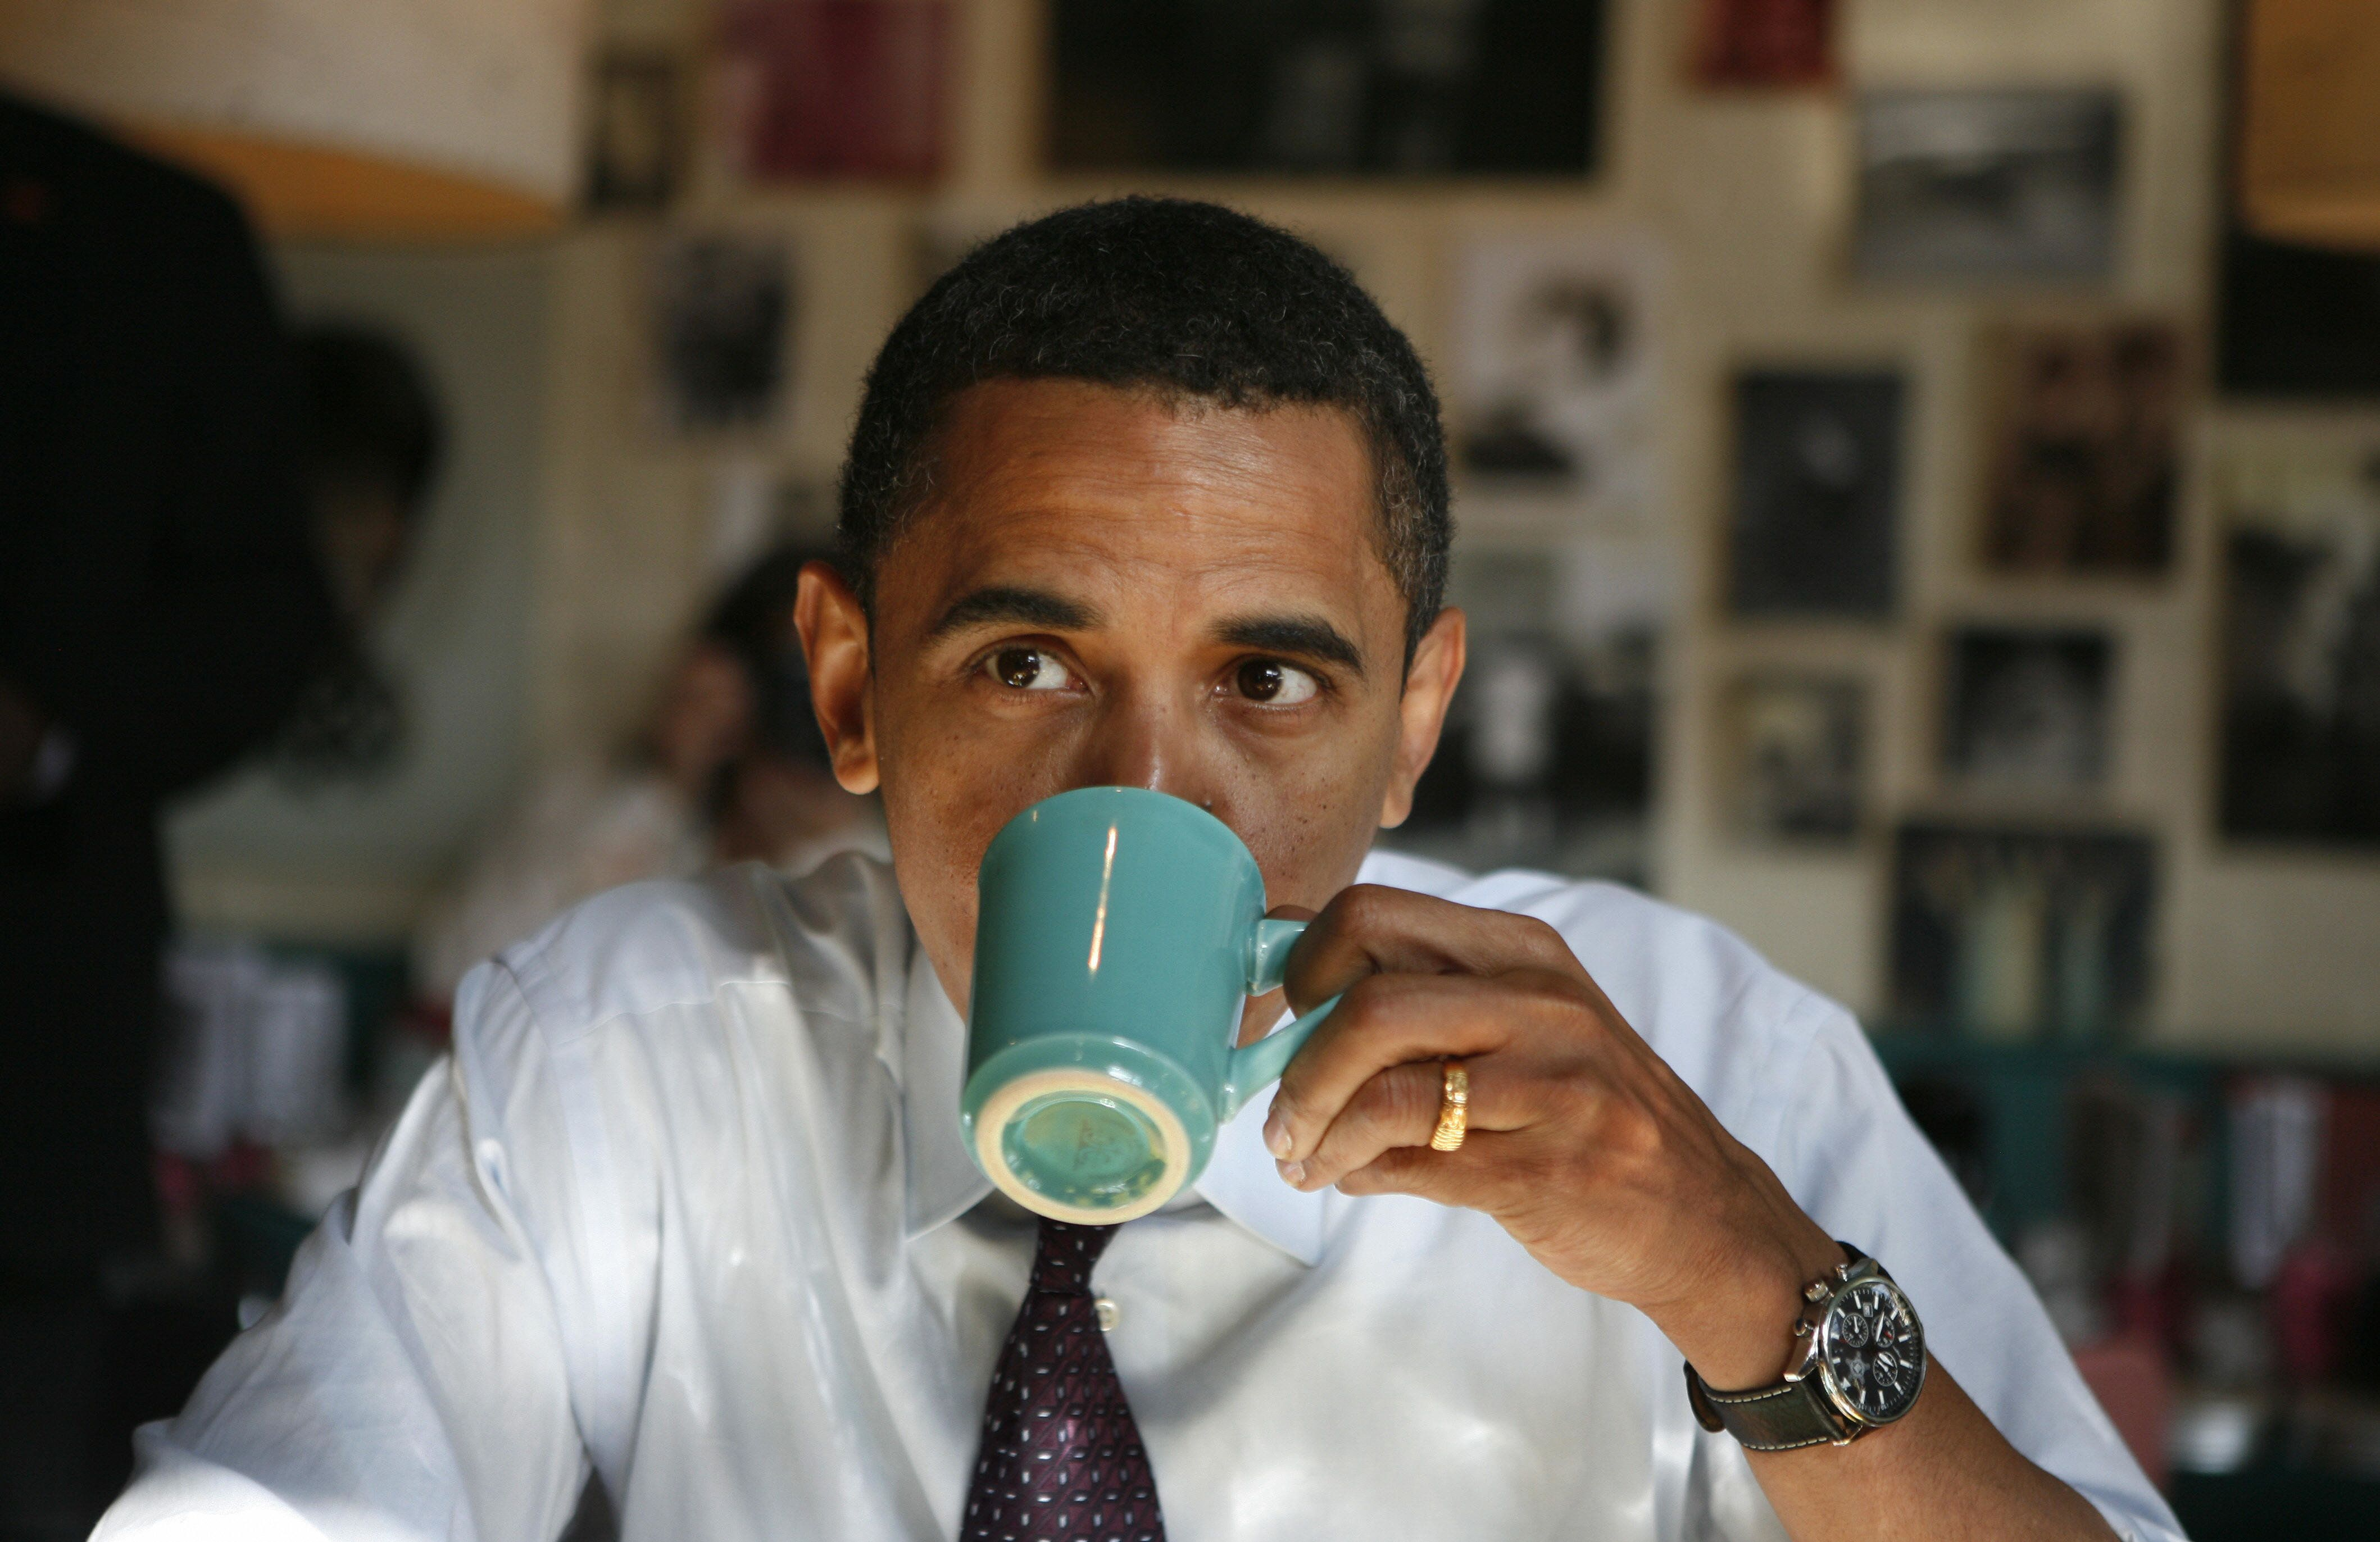 Democratic presidential candidate US Senator Barack Obama drinks coffee while having breakfast at Pamela's Diner in Pittsburgh, Pennsylvania,  April 22, 2008.  Polls opened in Pennsylvania's presidential primary Tuesday, with Hillary Clinton favored to win, but unlikely to overtake Barack Obama's overall lead in their marathon race for the Democratic nomination.    AFP PHOTO/Emmanuel Dunand (Photo credit should read EMMANUEL DUNAND/AFP/Getty Images)